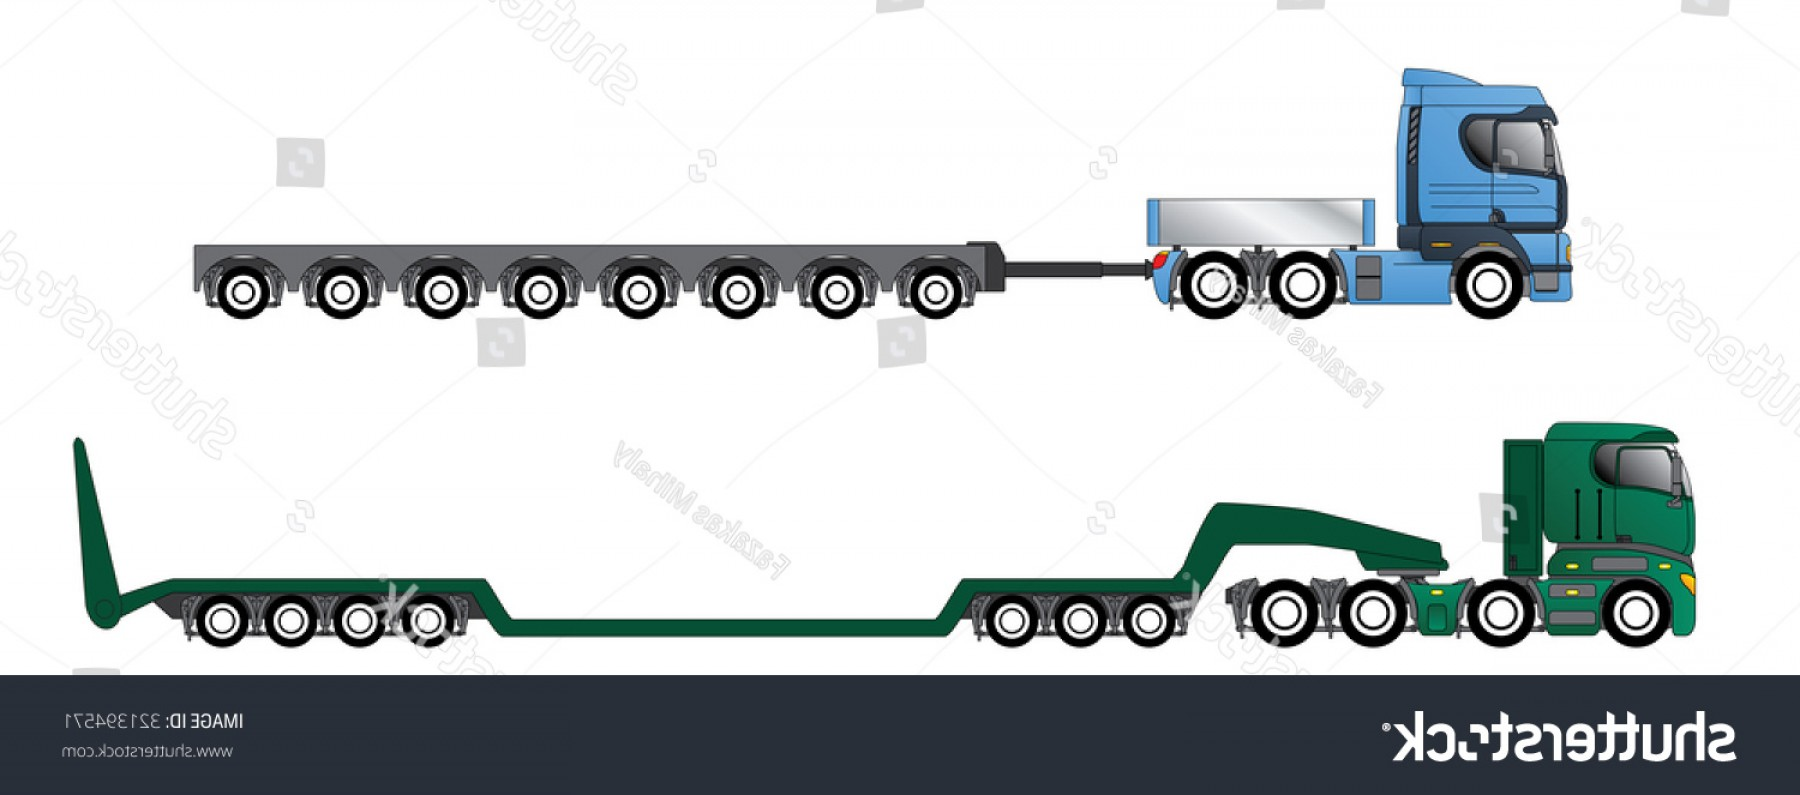 Vector Truck And Trailer Hauling: Trucks Oversize Overweight Hauling Trailers